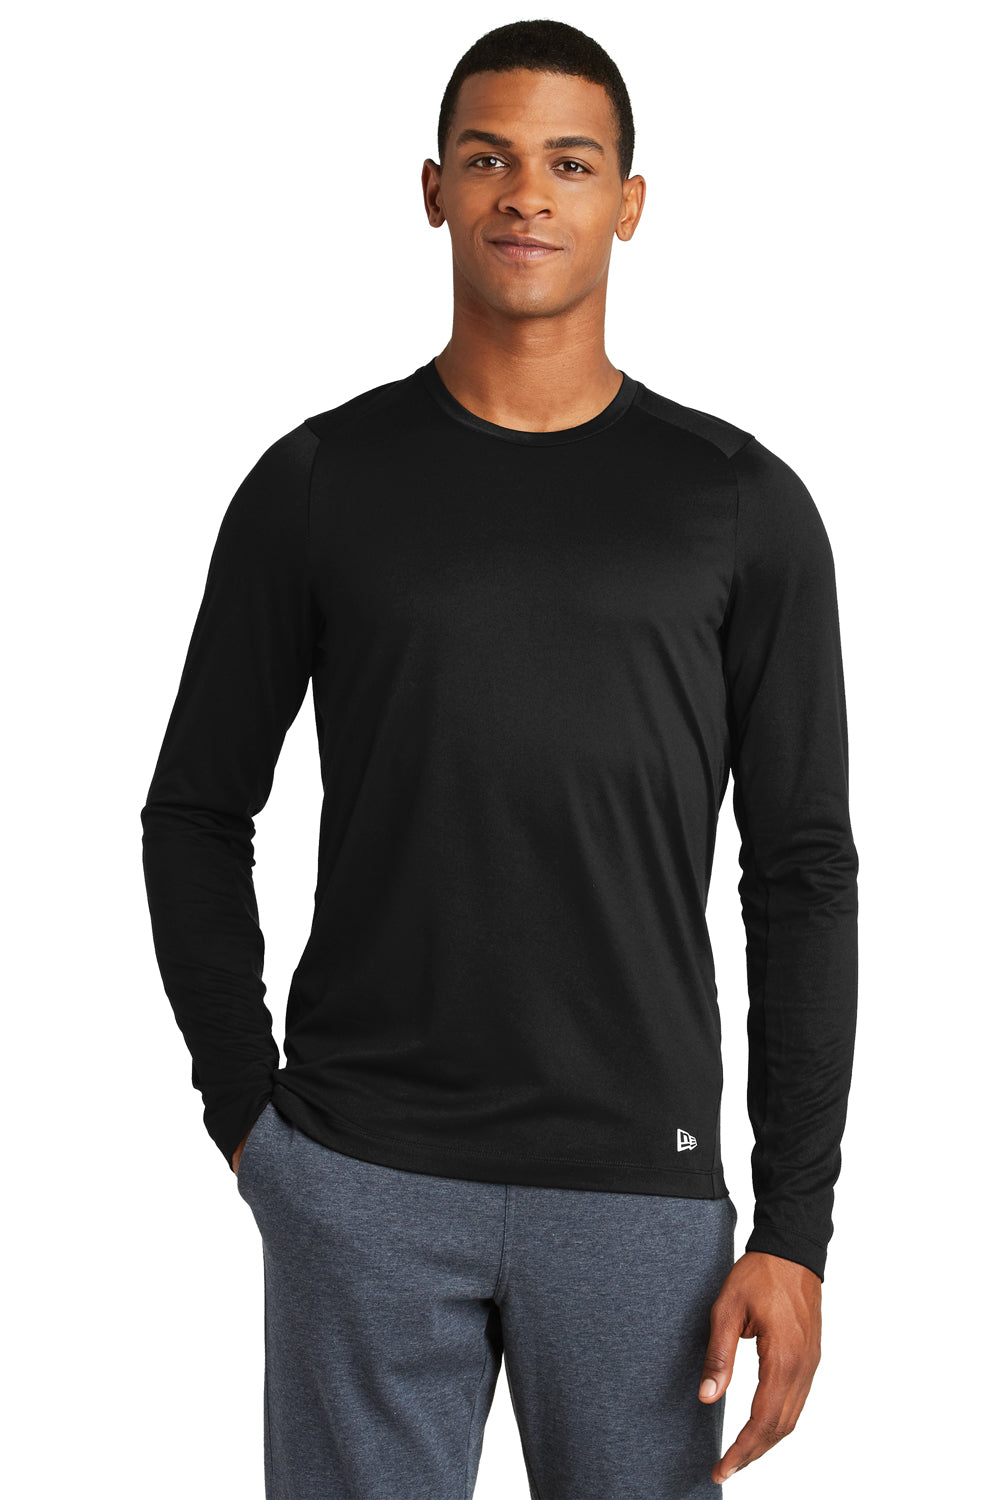 New Era NEA201 Mens Series Performance Moisture Wicking Long Sleeve Crewneck T-Shirt Black Front